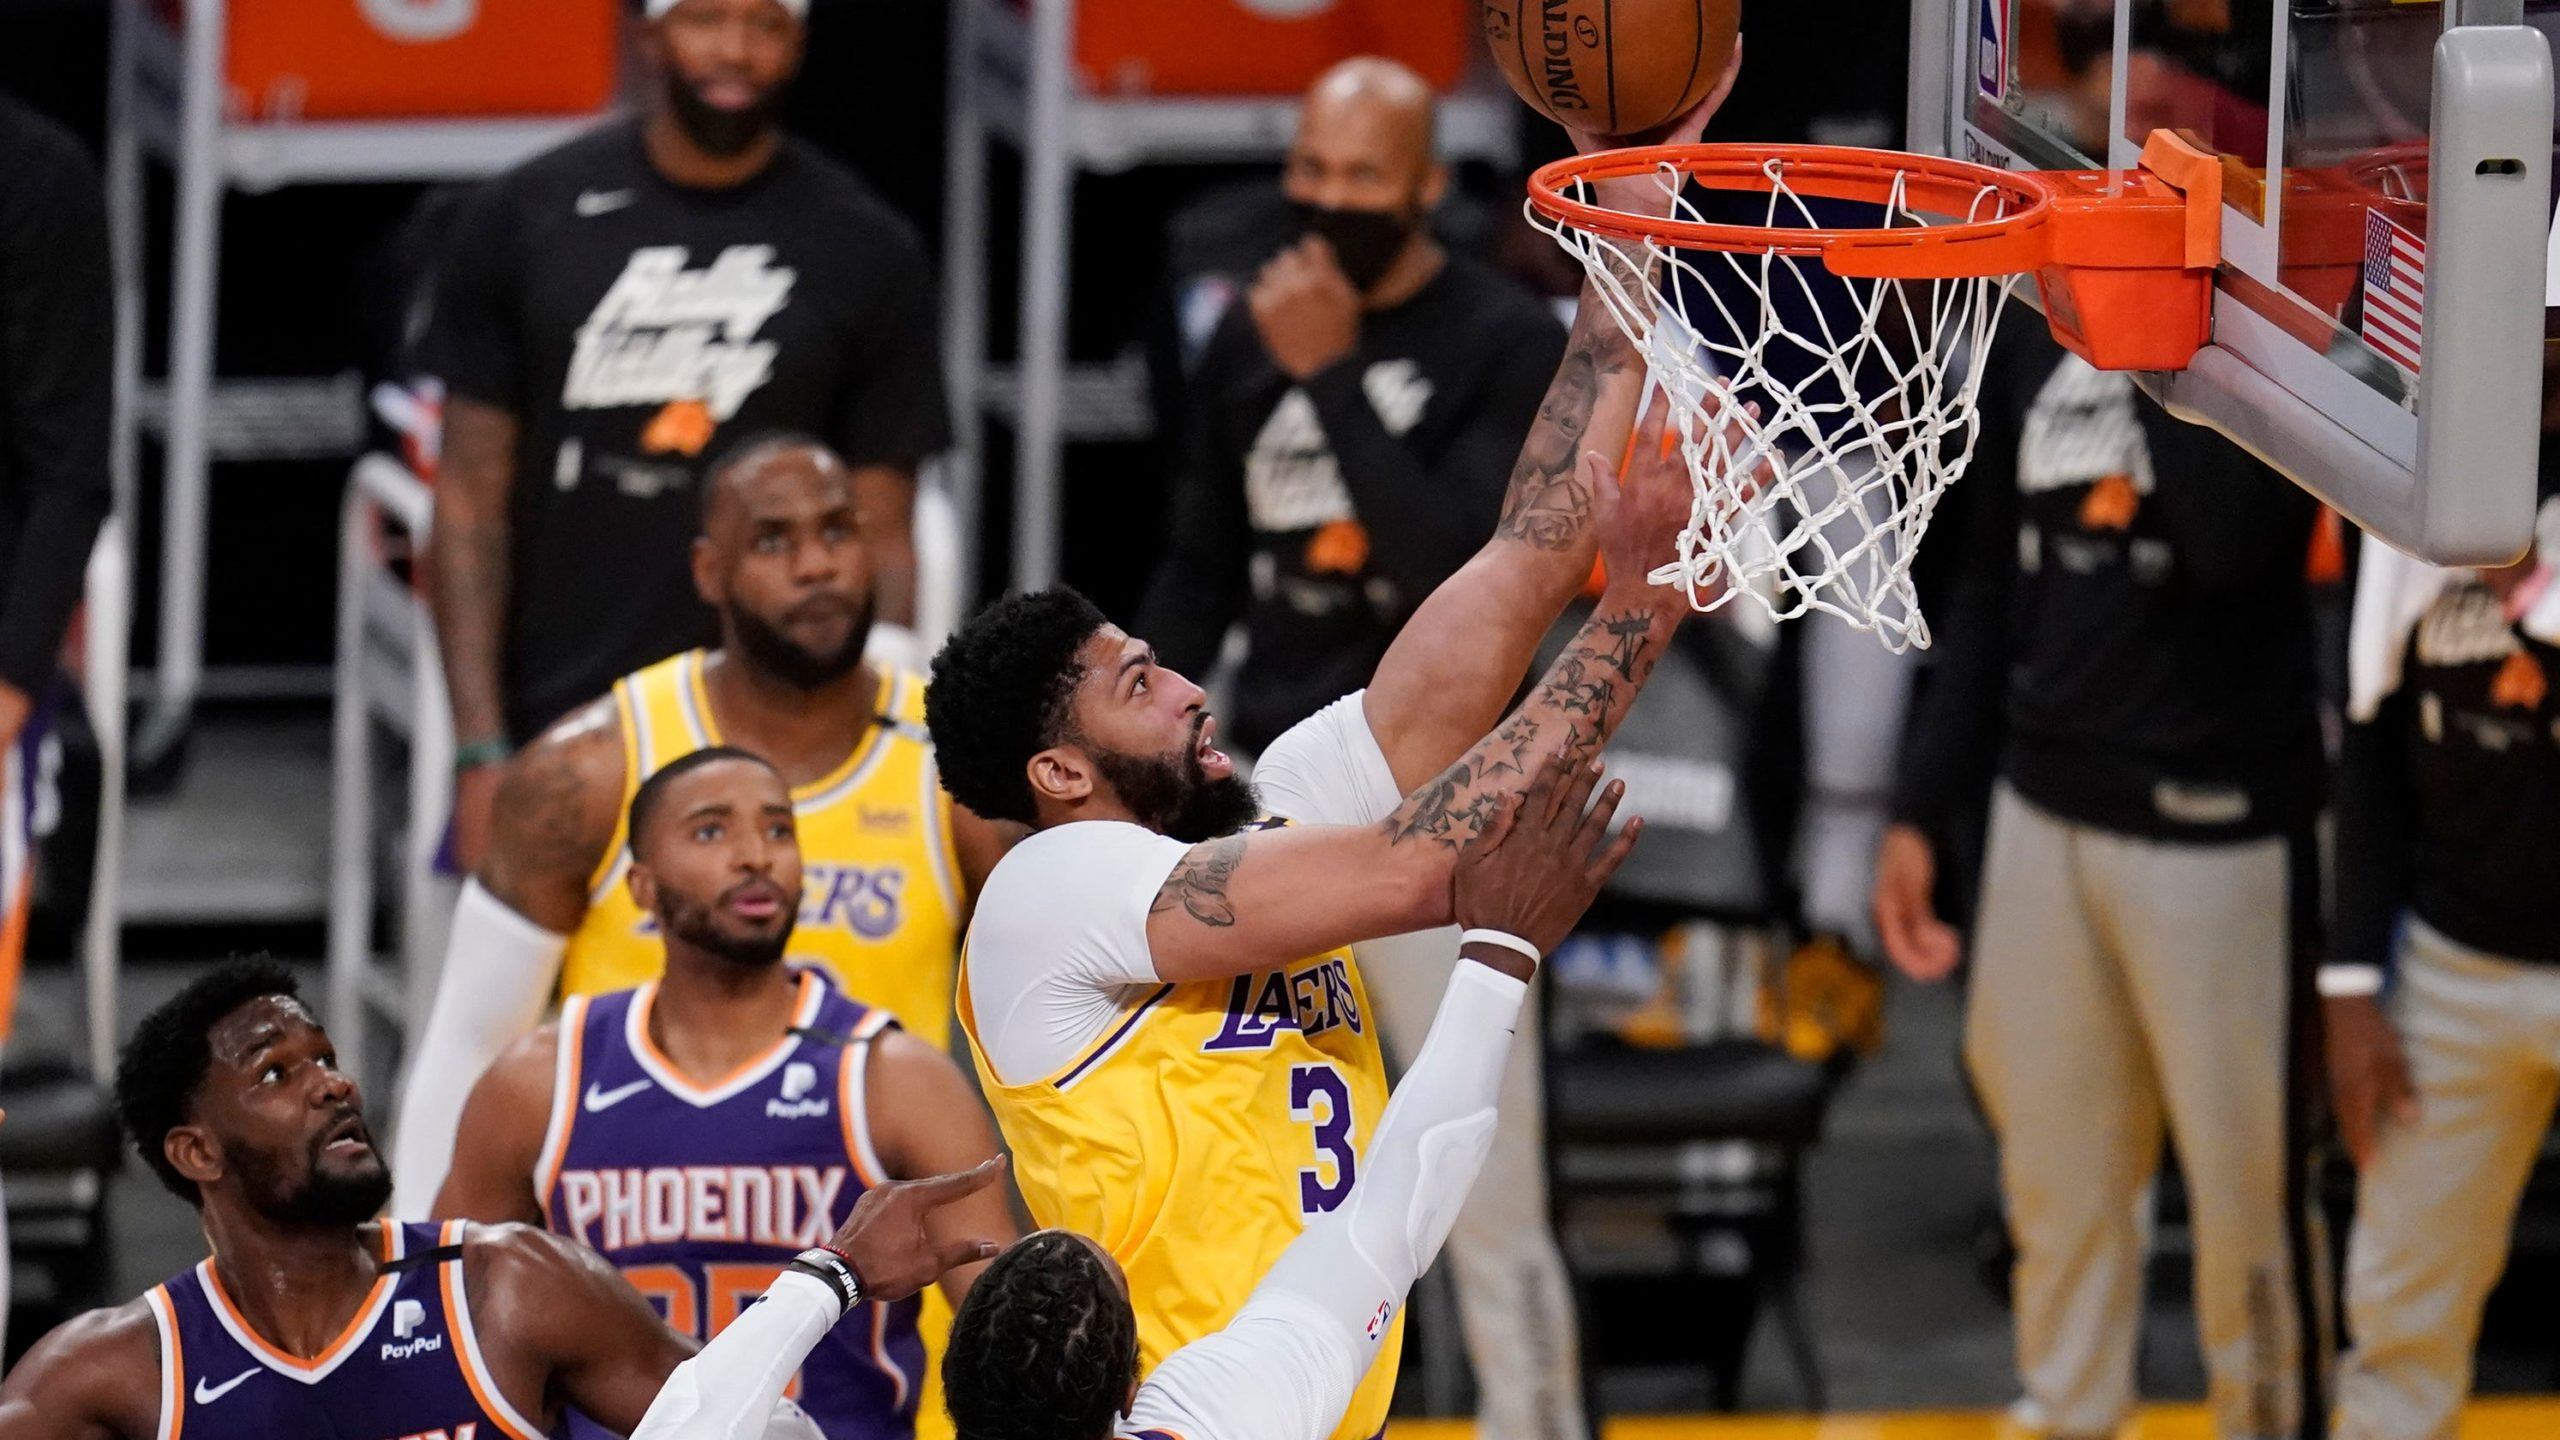 lakers-109-suns-95-anthony-davis-powers-lakers-by-the-wretchedness-for-2-1-lead-on-suns.jpg